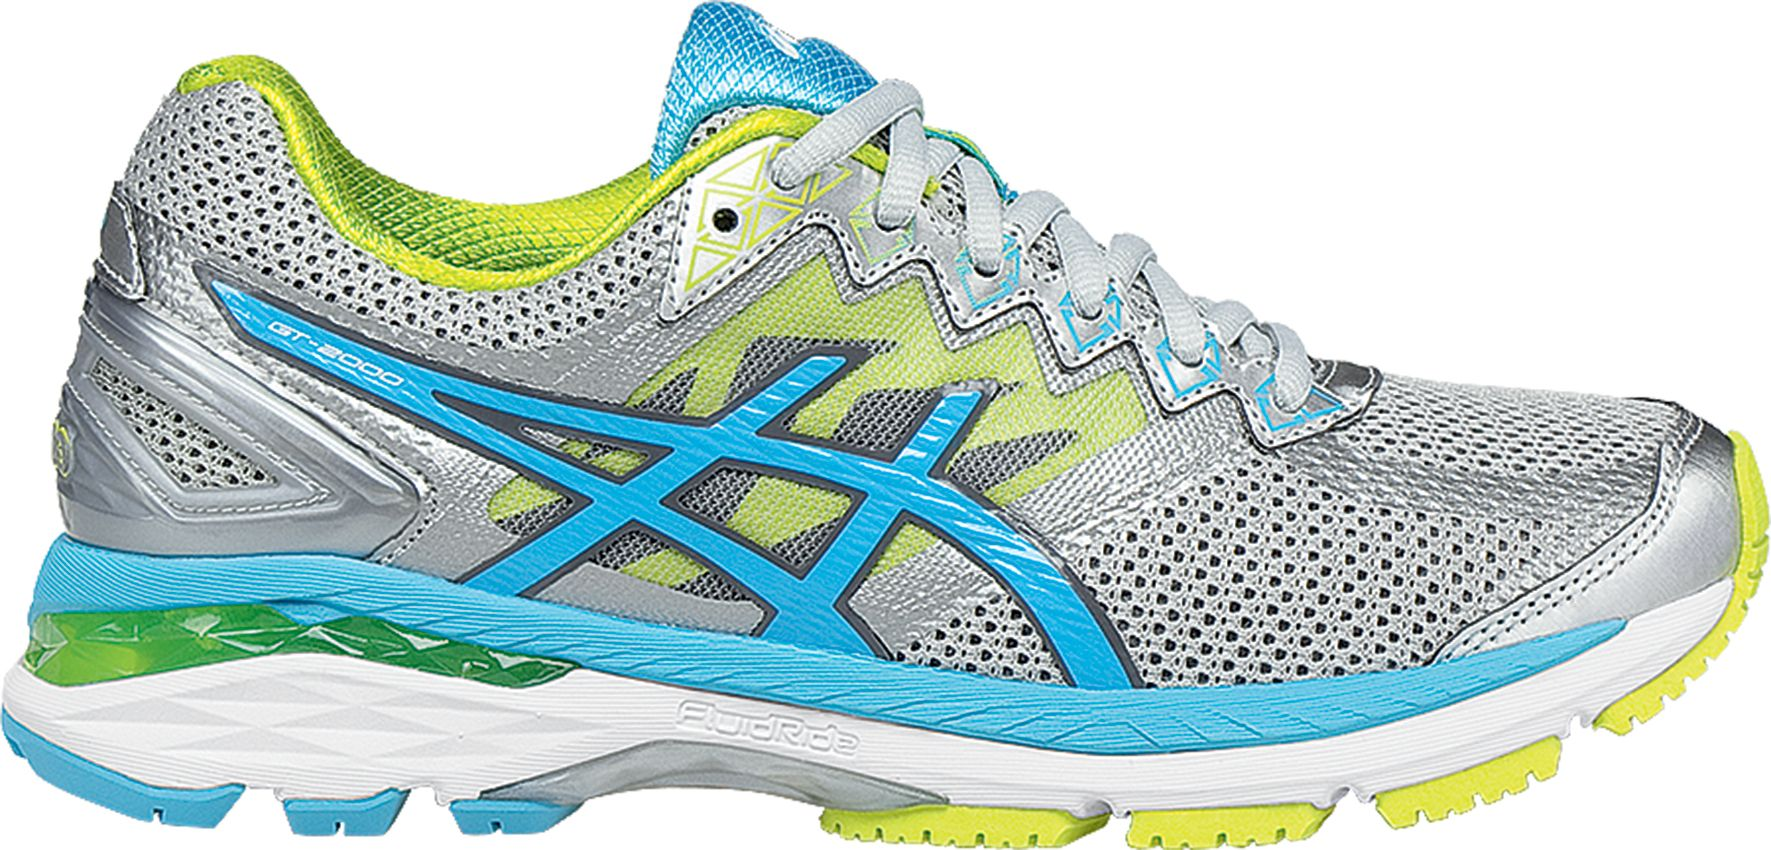 Product Image Asics Women S Gt 2000 4 Running Shoes